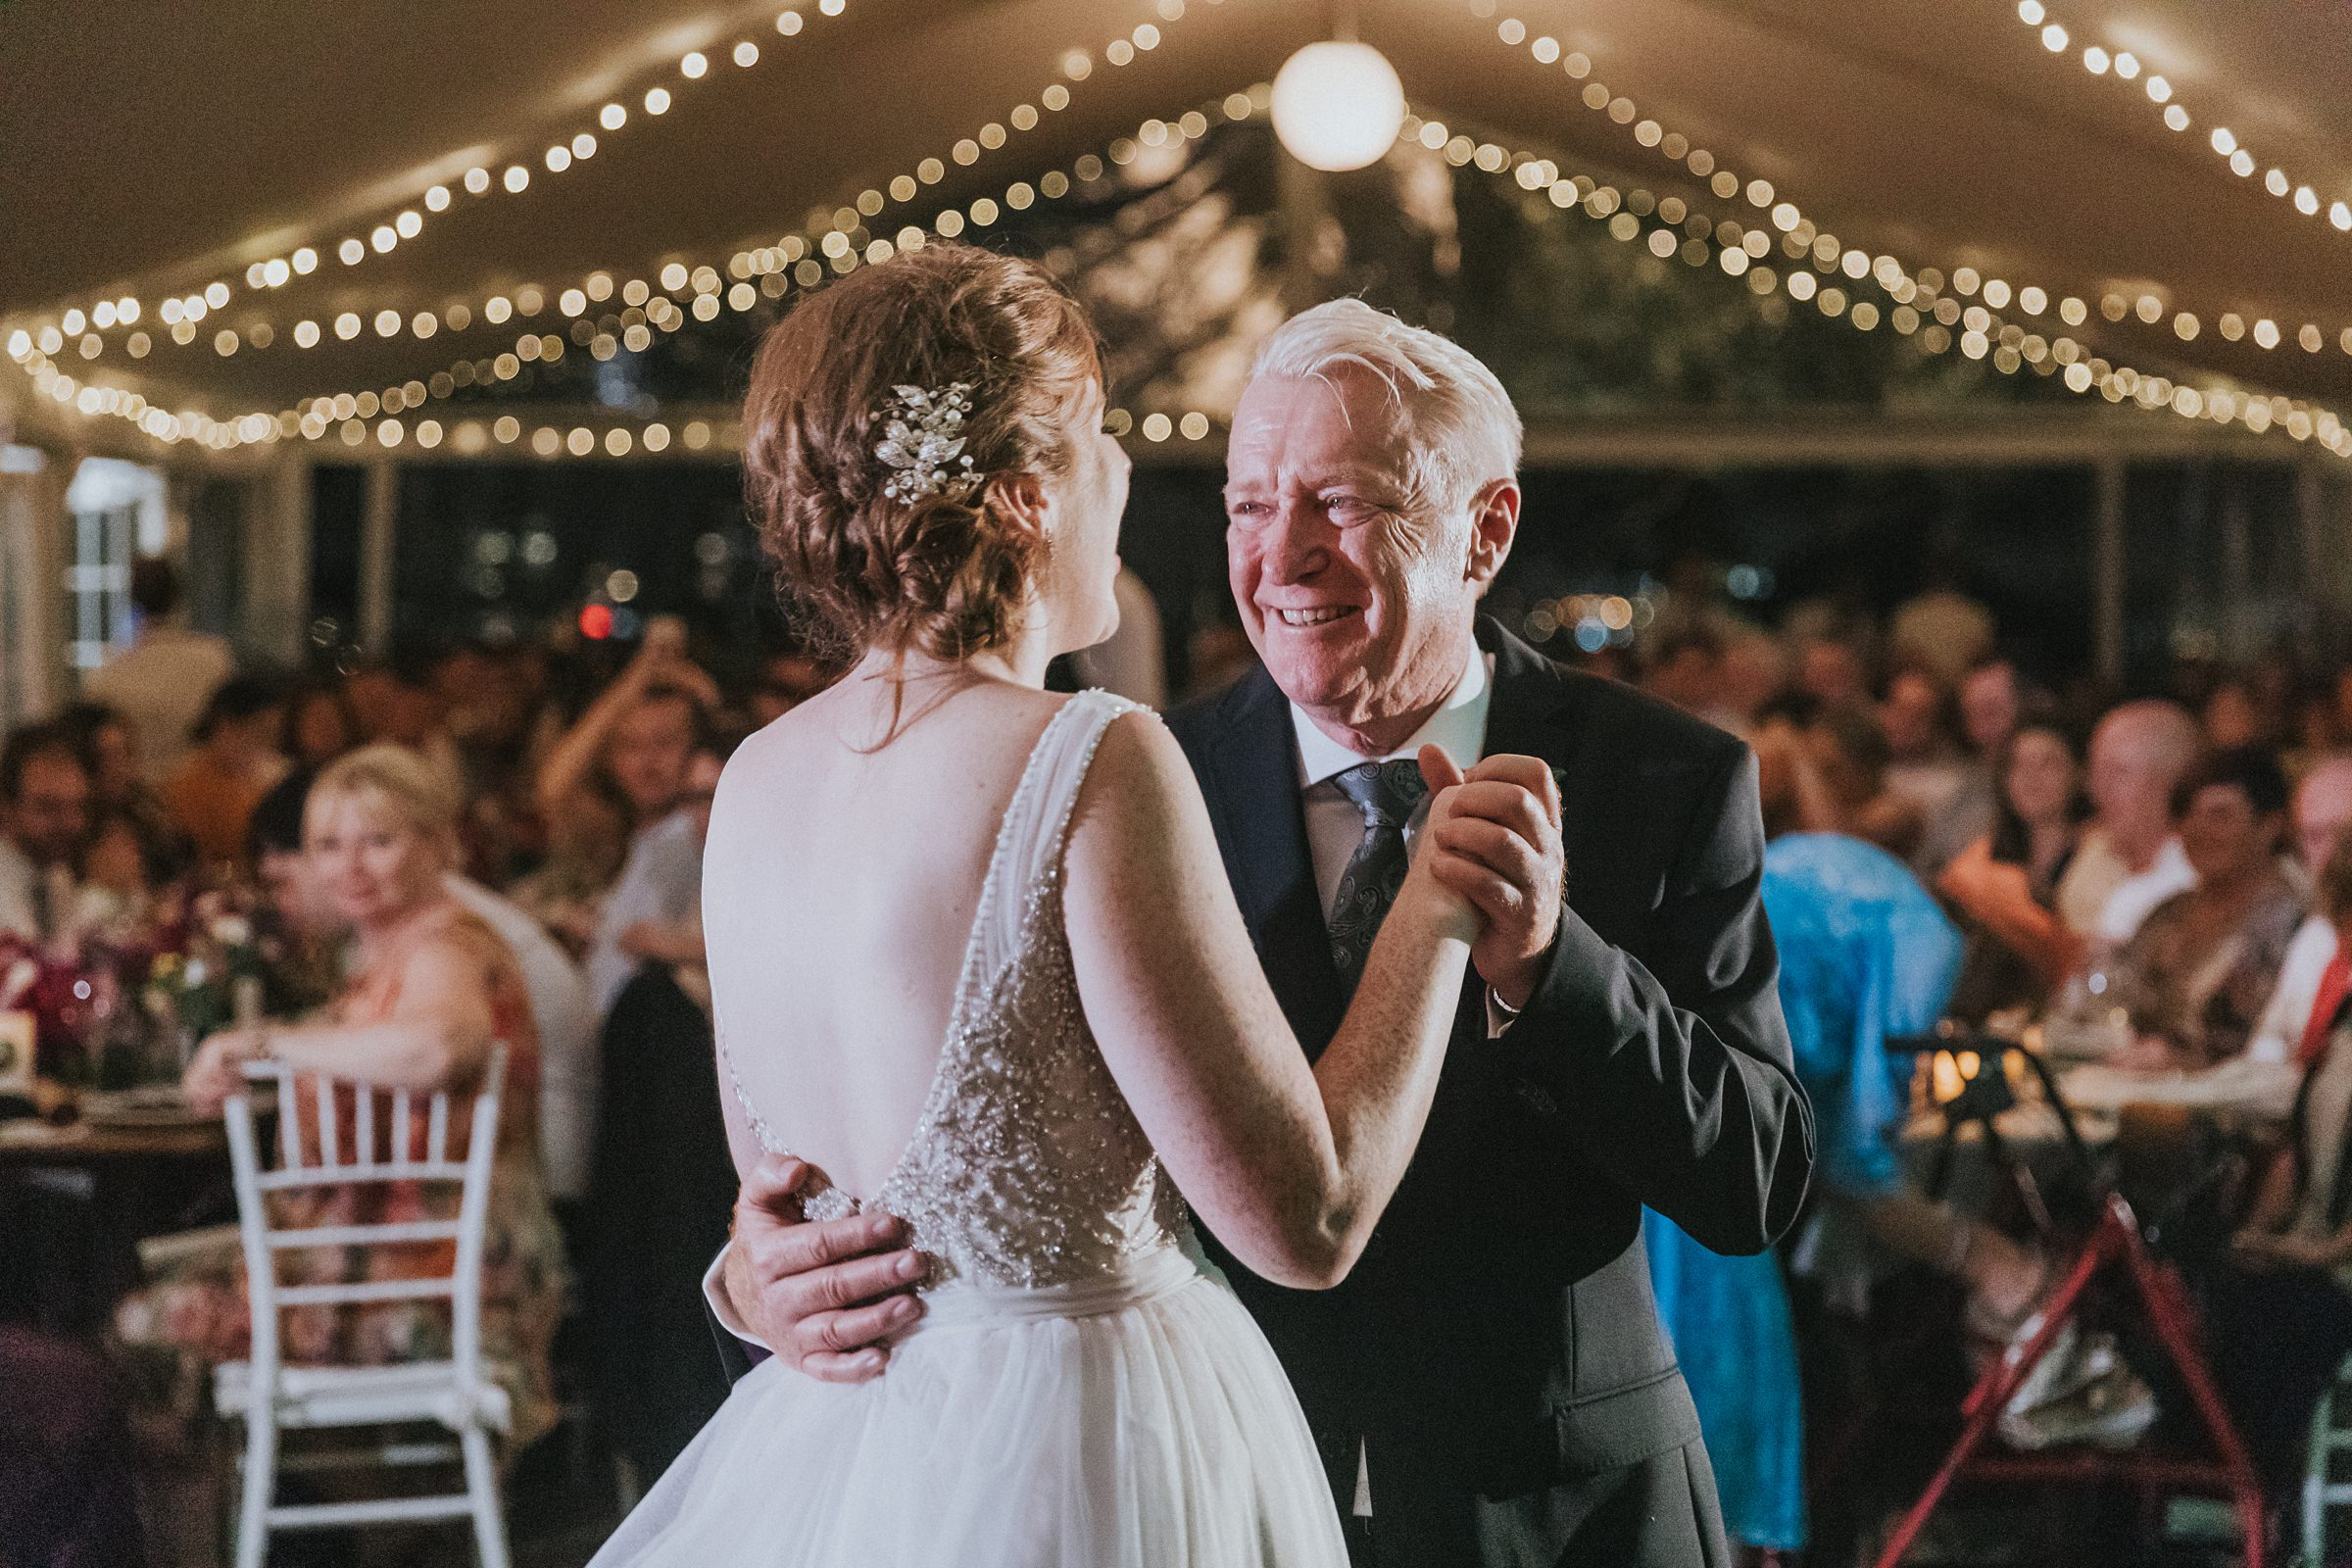 father of the bride wedding dance with bride in marquee